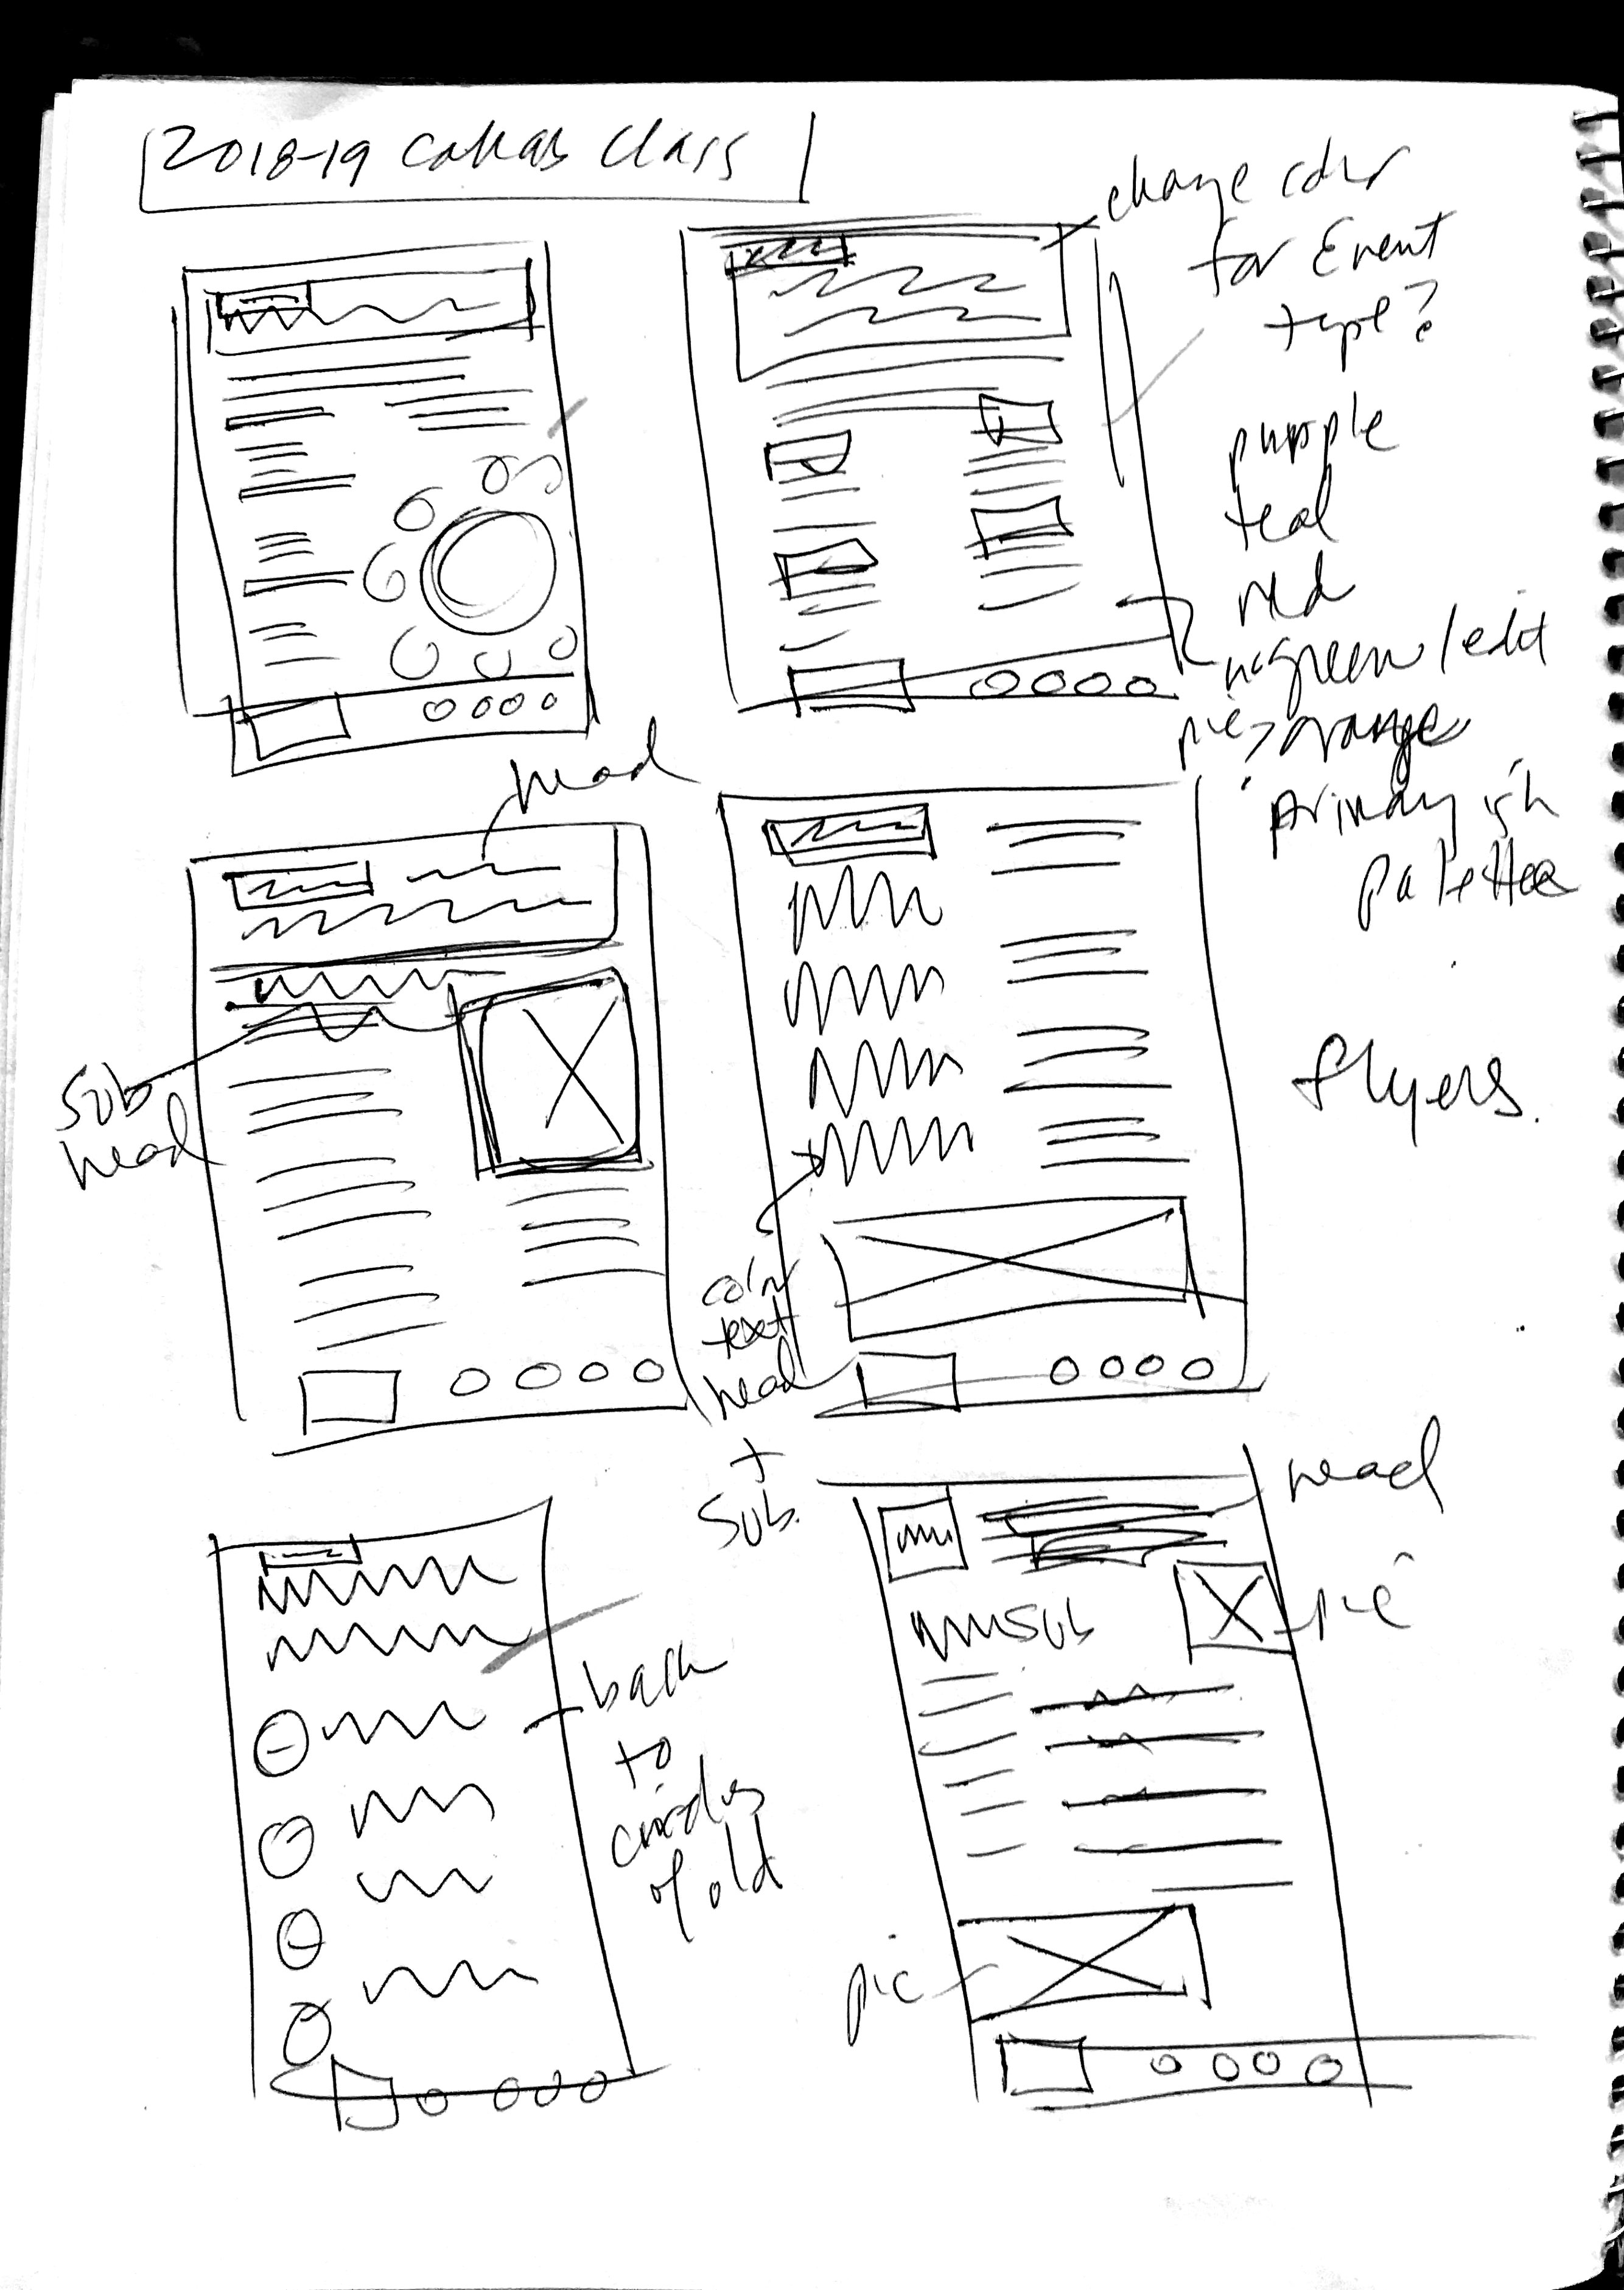 marketing look and feel sketches